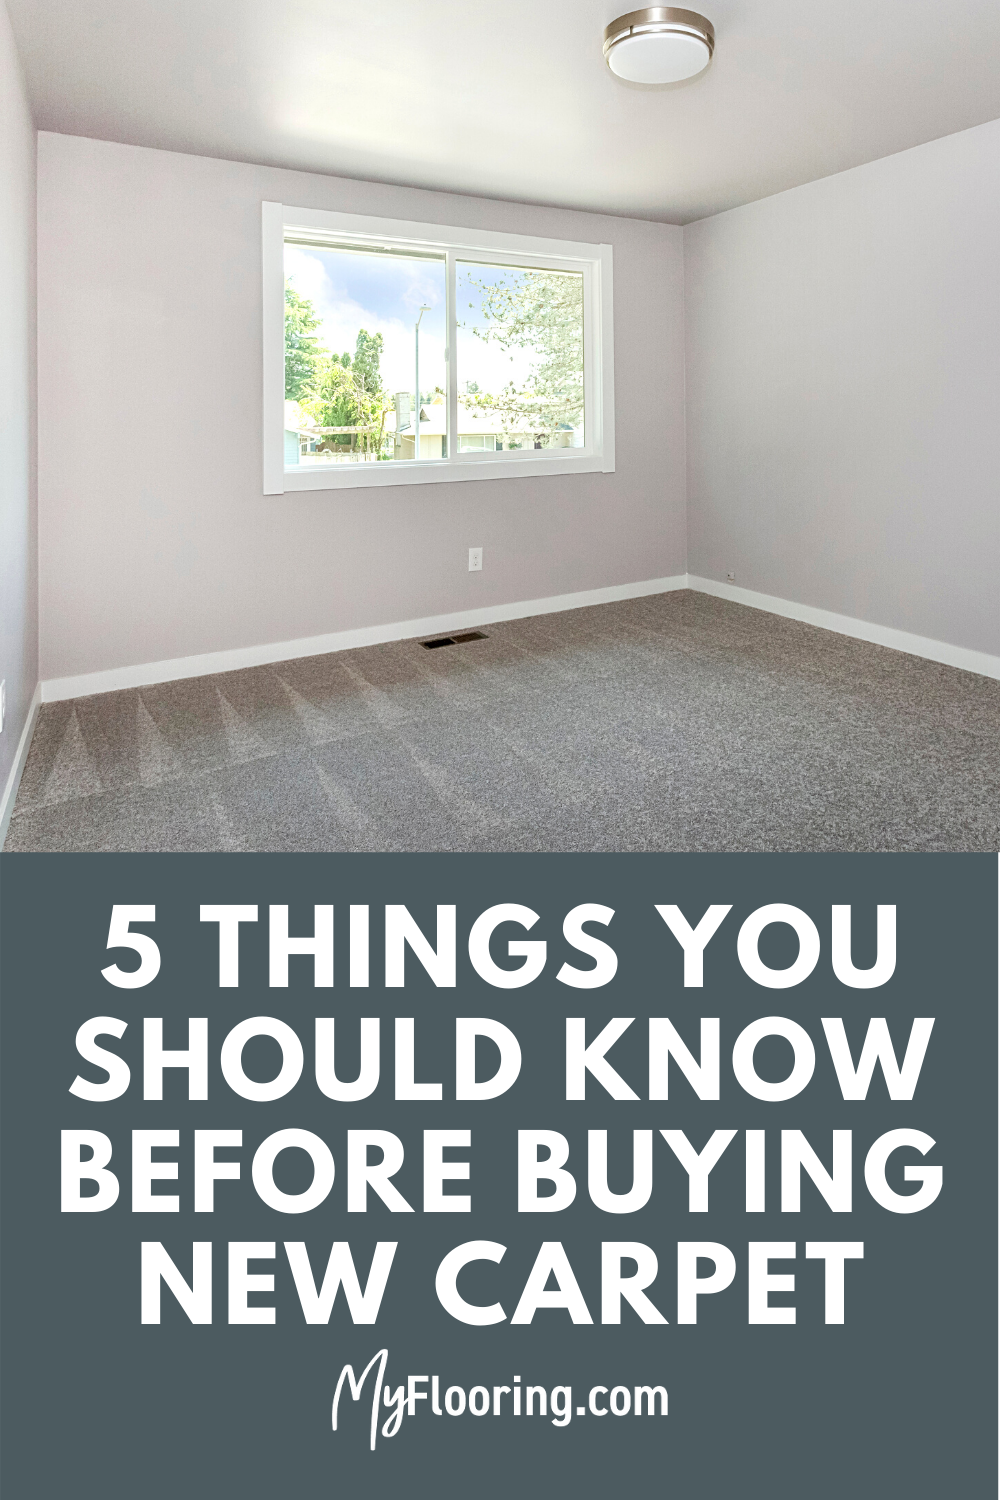 5 Things You Should Know Before Buying New Carpet